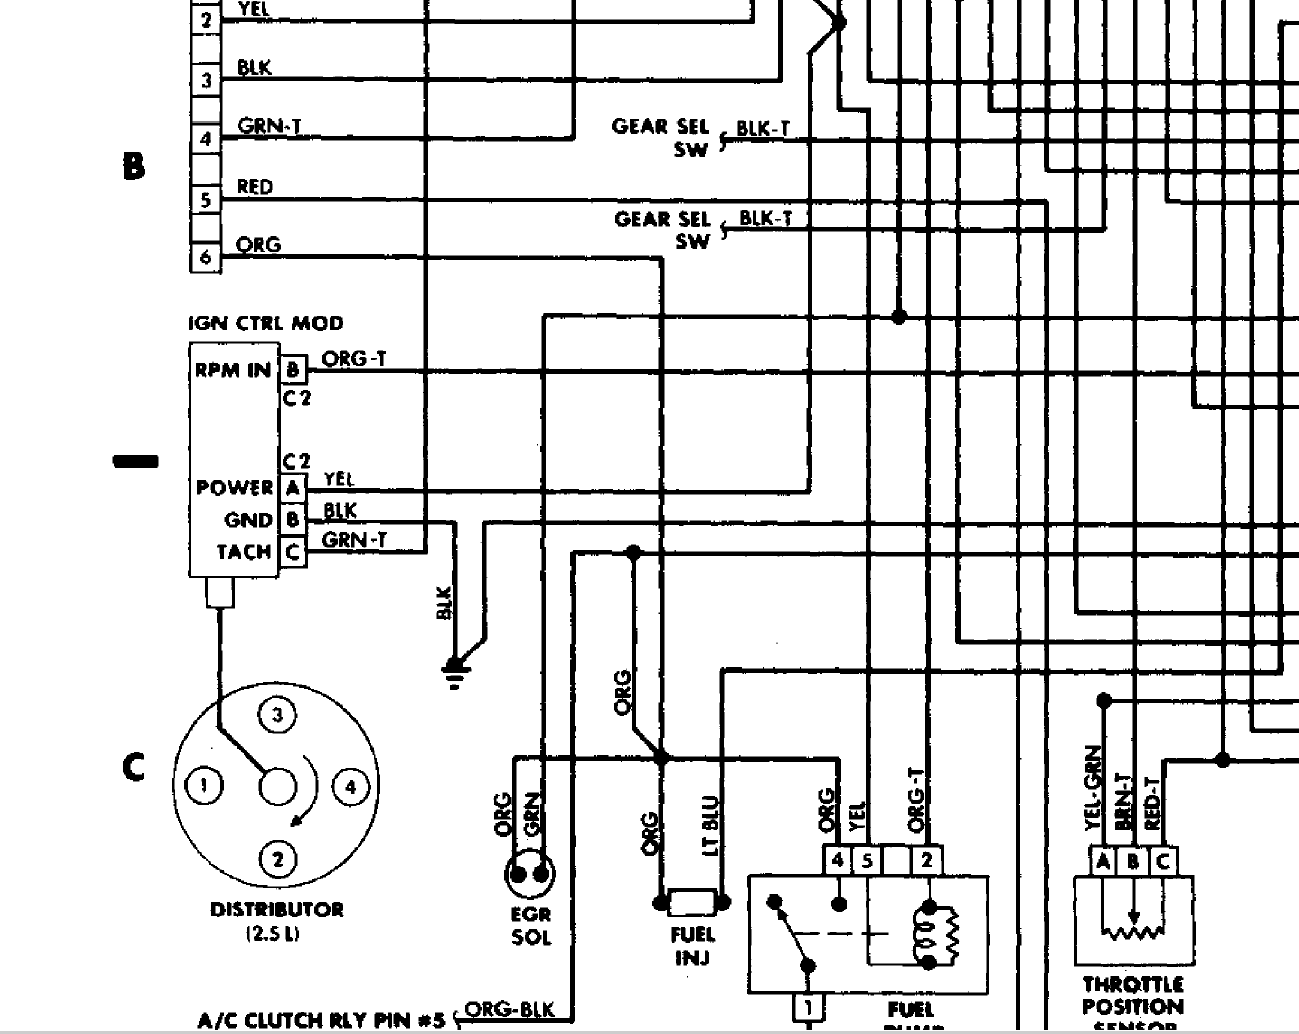 89 jeep cherokee headlight wiring diagram 90 jeep wrangler wiring diagram poli fuse21 klictravel nl  90 jeep wrangler wiring diagram poli